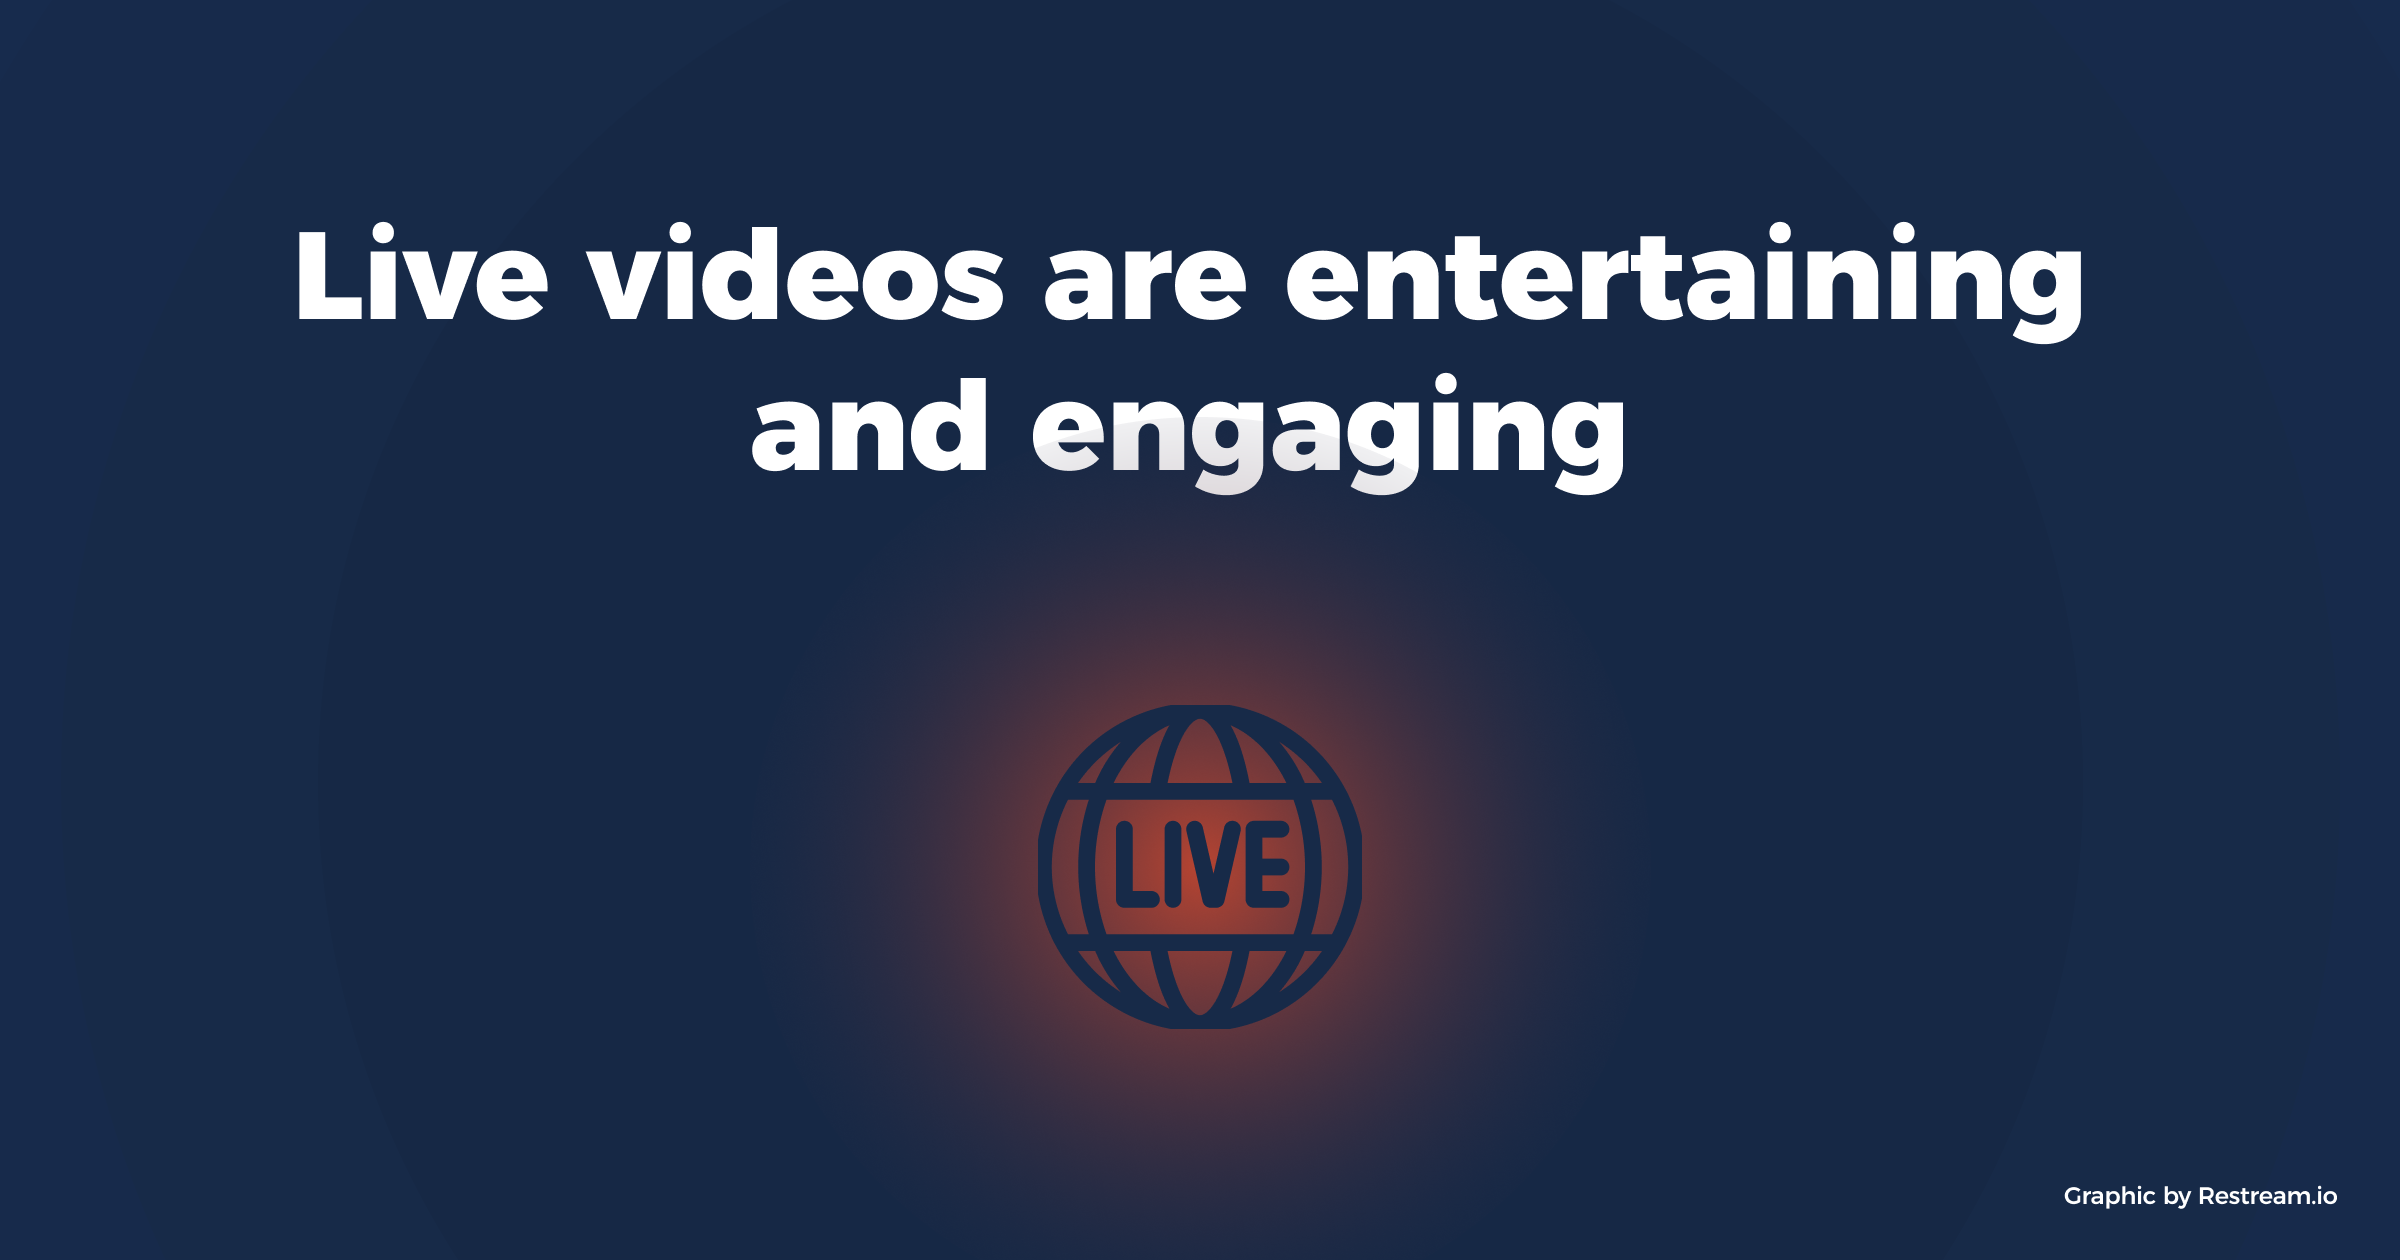 Live videos are entertaining and engaging